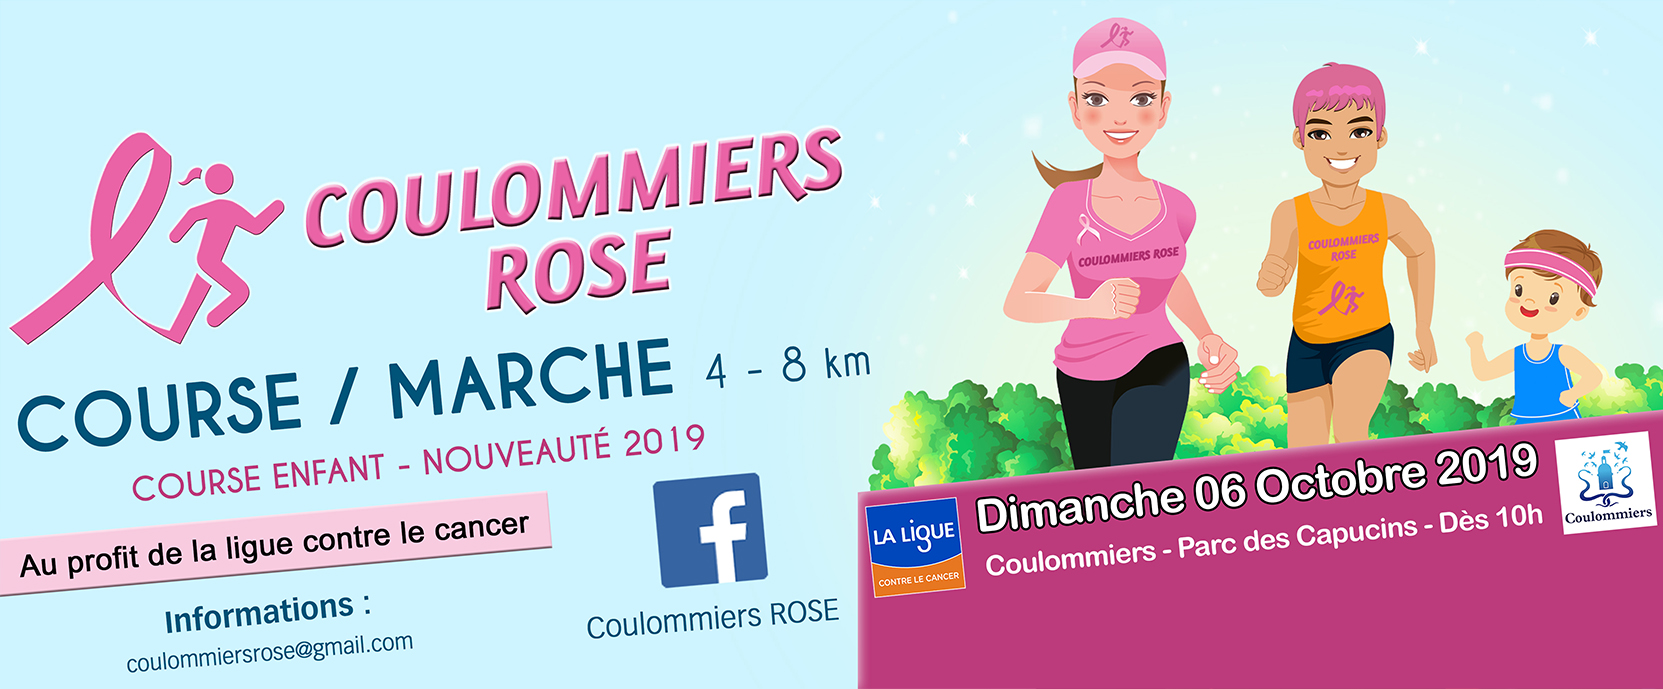 coulommiers_rose_2019_slider_1